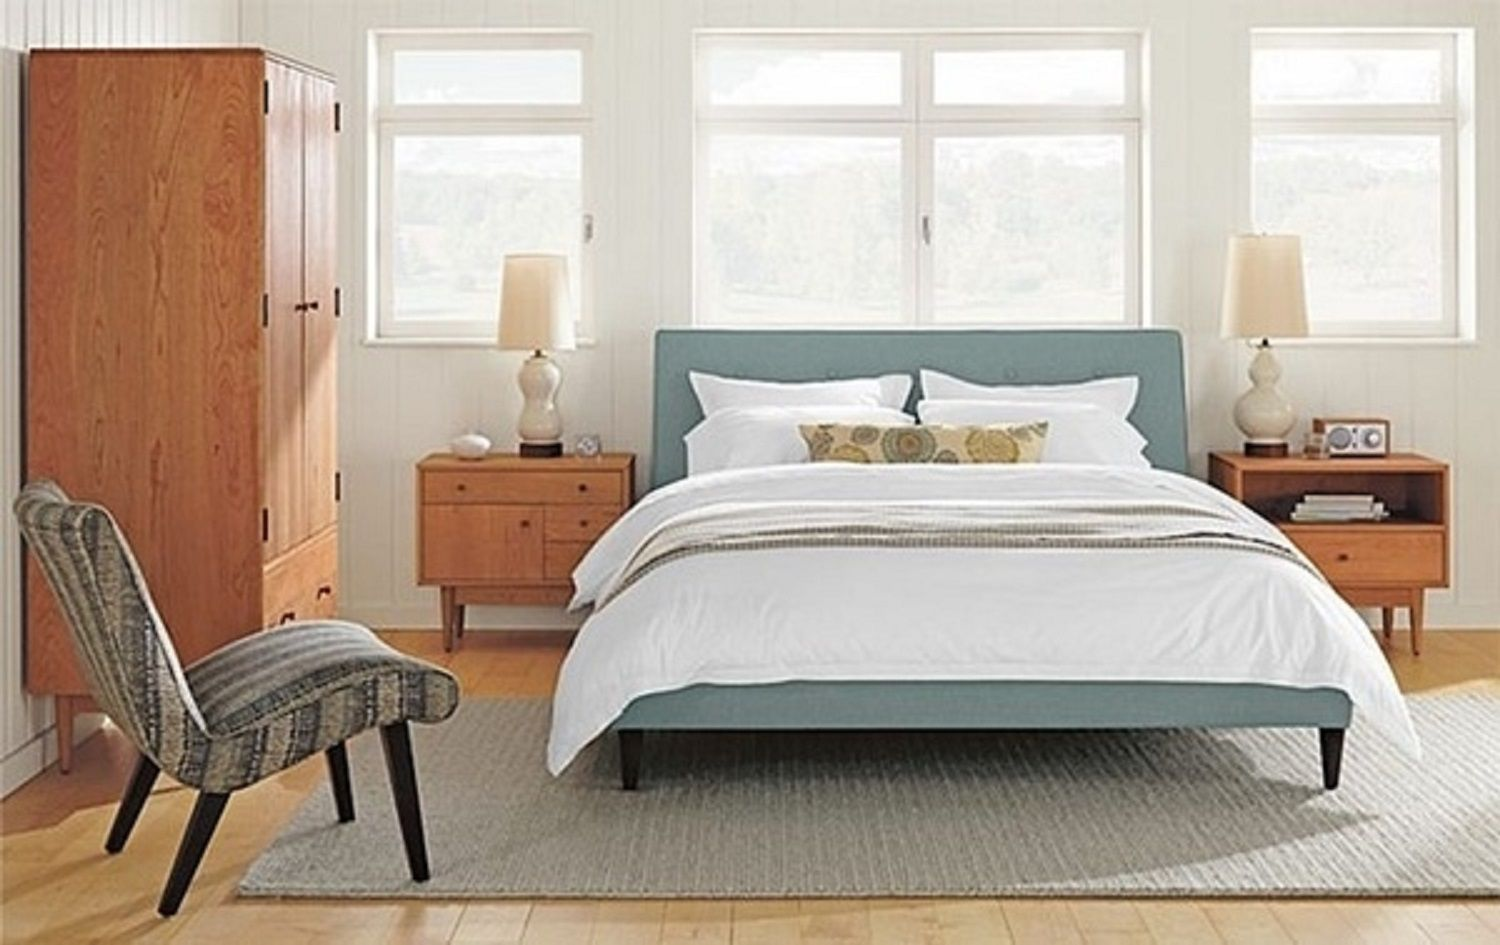 24 Tips And Photos For Decorating A Modern Master Bedroom